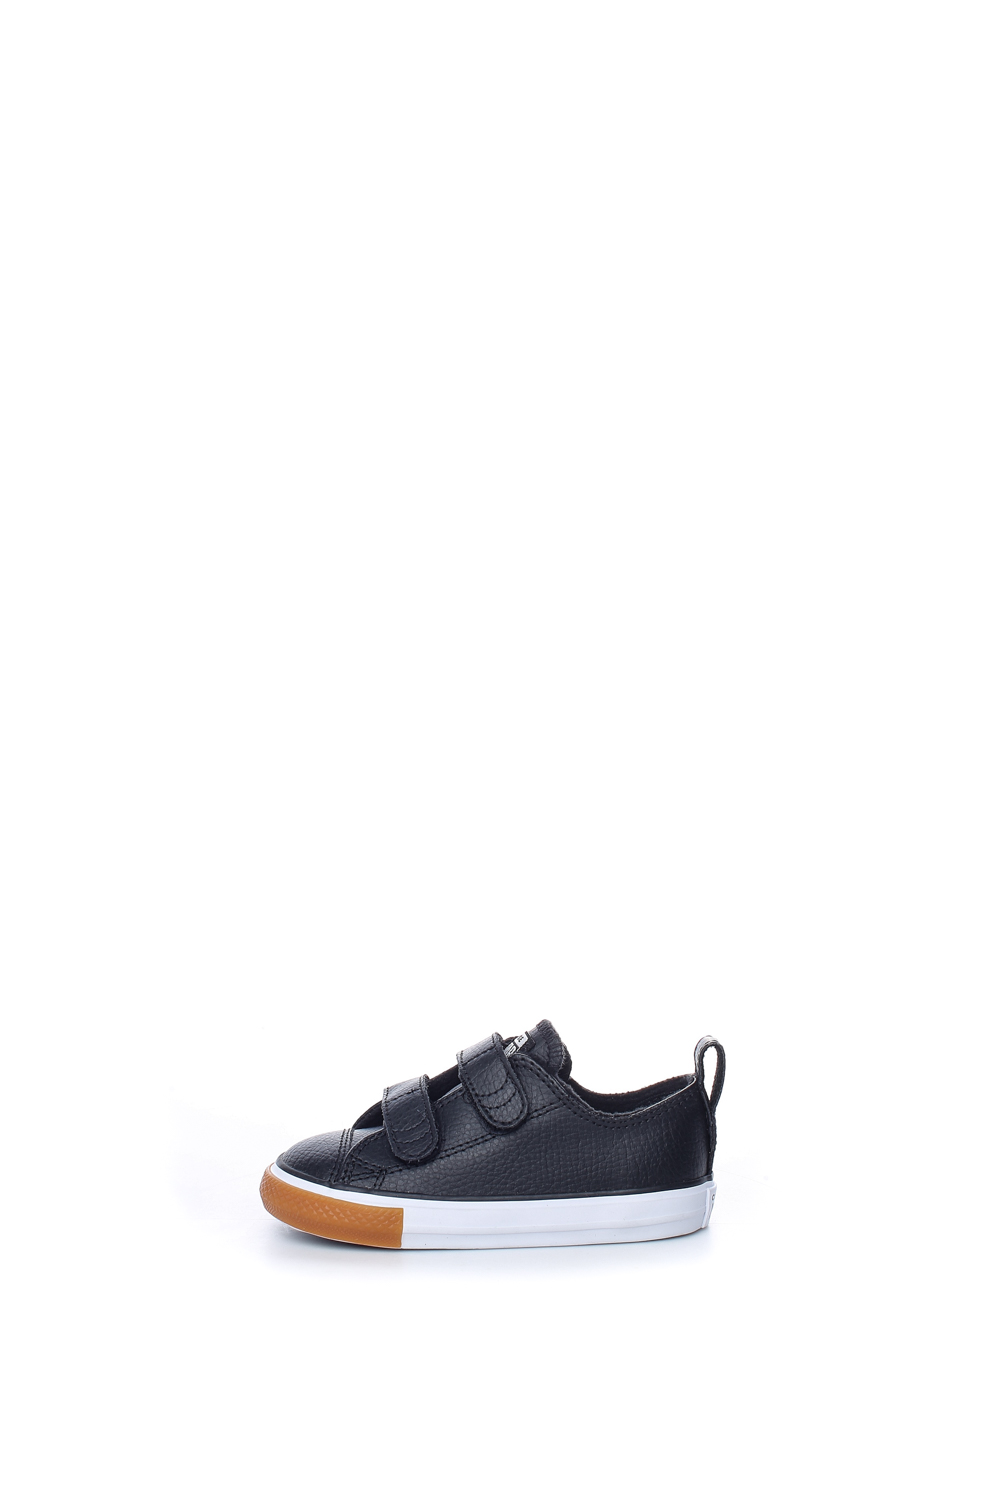 8aa38a46ba6 -40% Collective Online CONVERSE – Βρεφικά παπούτσια CHUCK TAYLOR ALL STAR  2V μαύρα